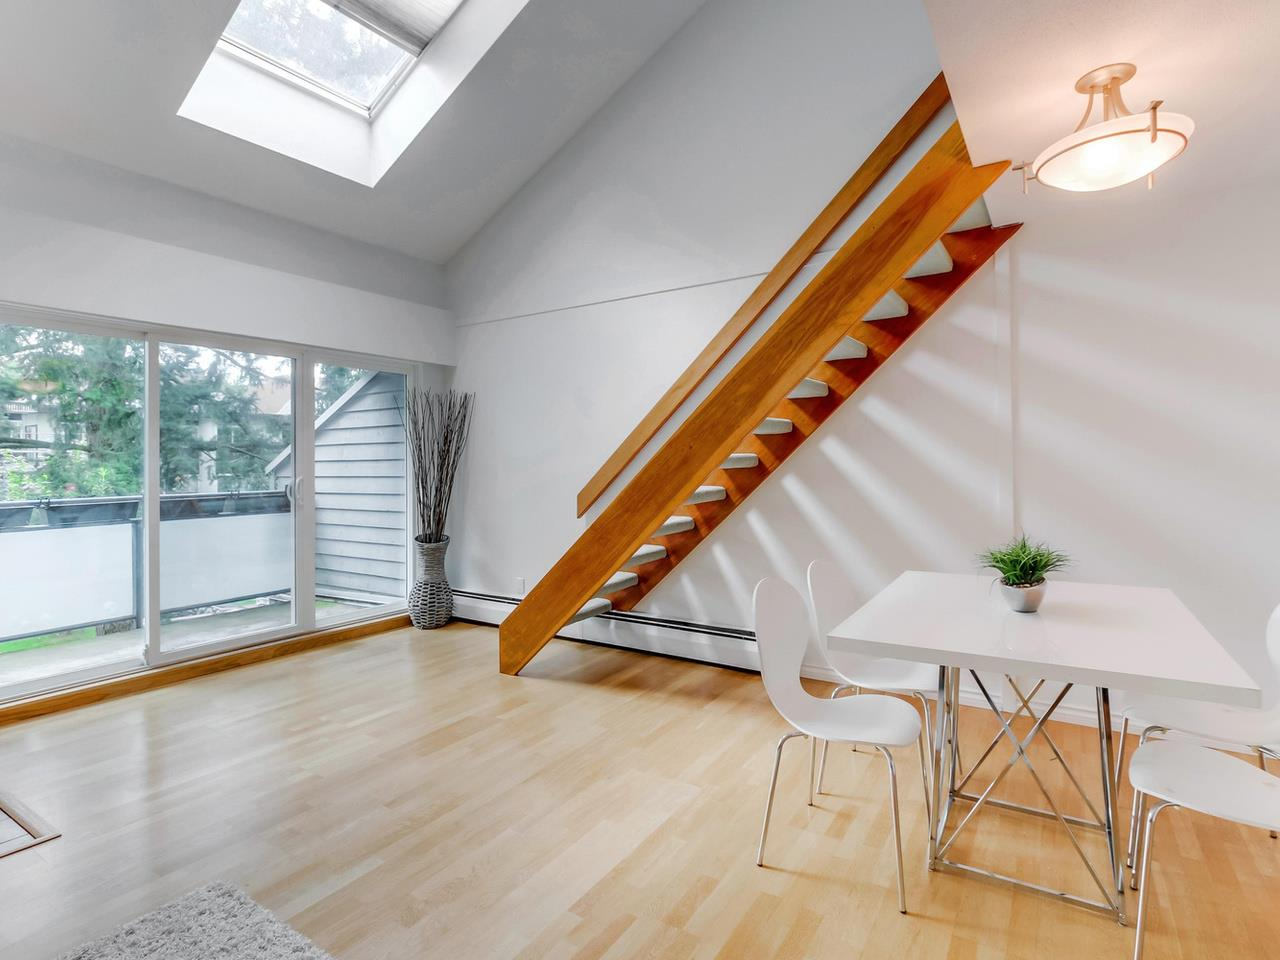 Main Photo: PH1 2125 YORK AVENUE in Vancouver: Kitsilano Condo for sale (Vancouver West)  : MLS® # R2089526